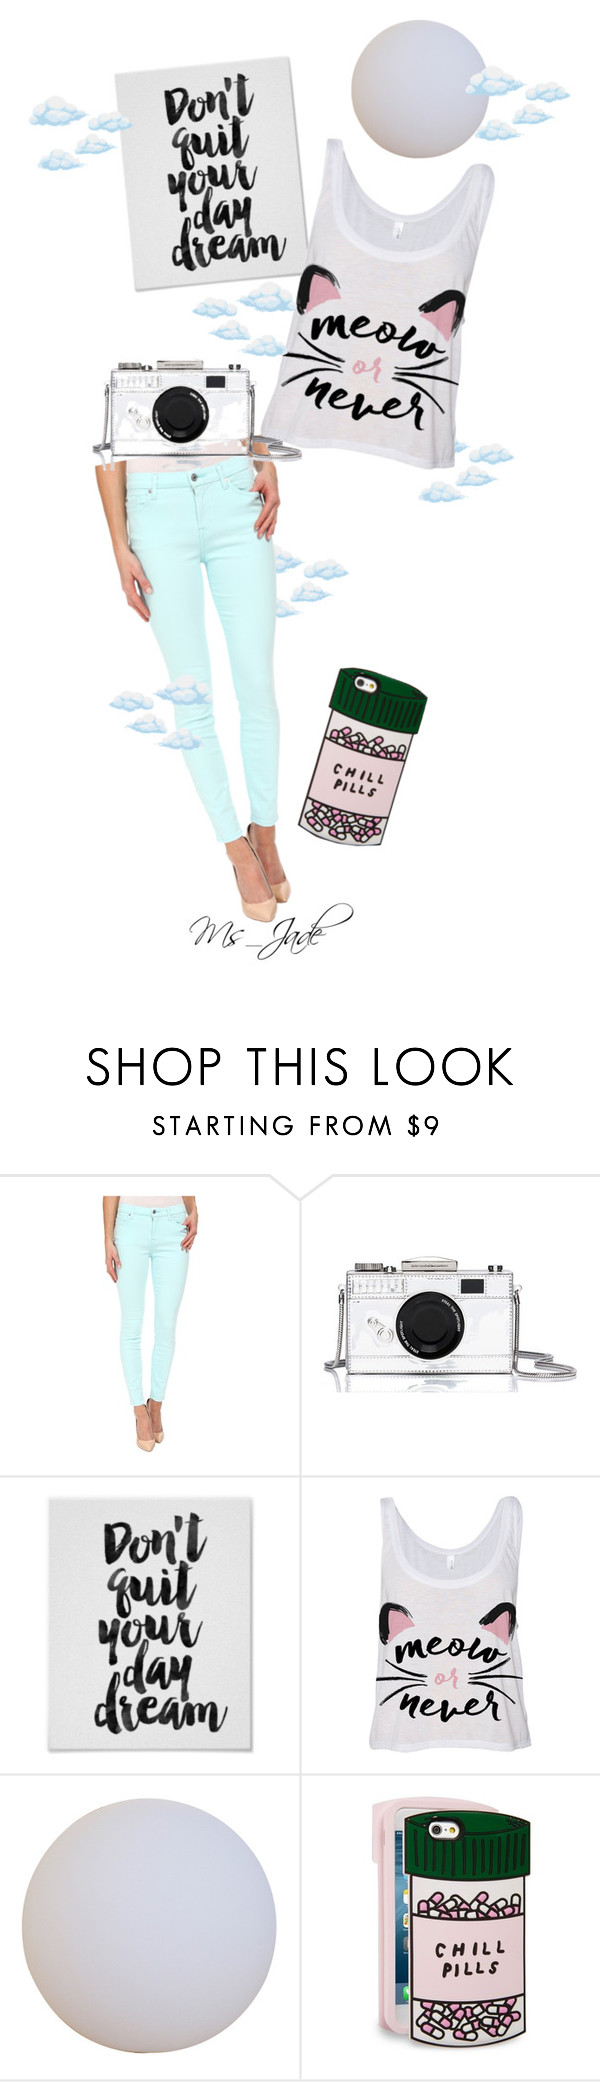 """Happy Daydreaming"" by ms-jade-1 ❤ liked on Polyvore featuring 7 For All Mankind, Kate Spade, ban.do, Spring, art and pastels"